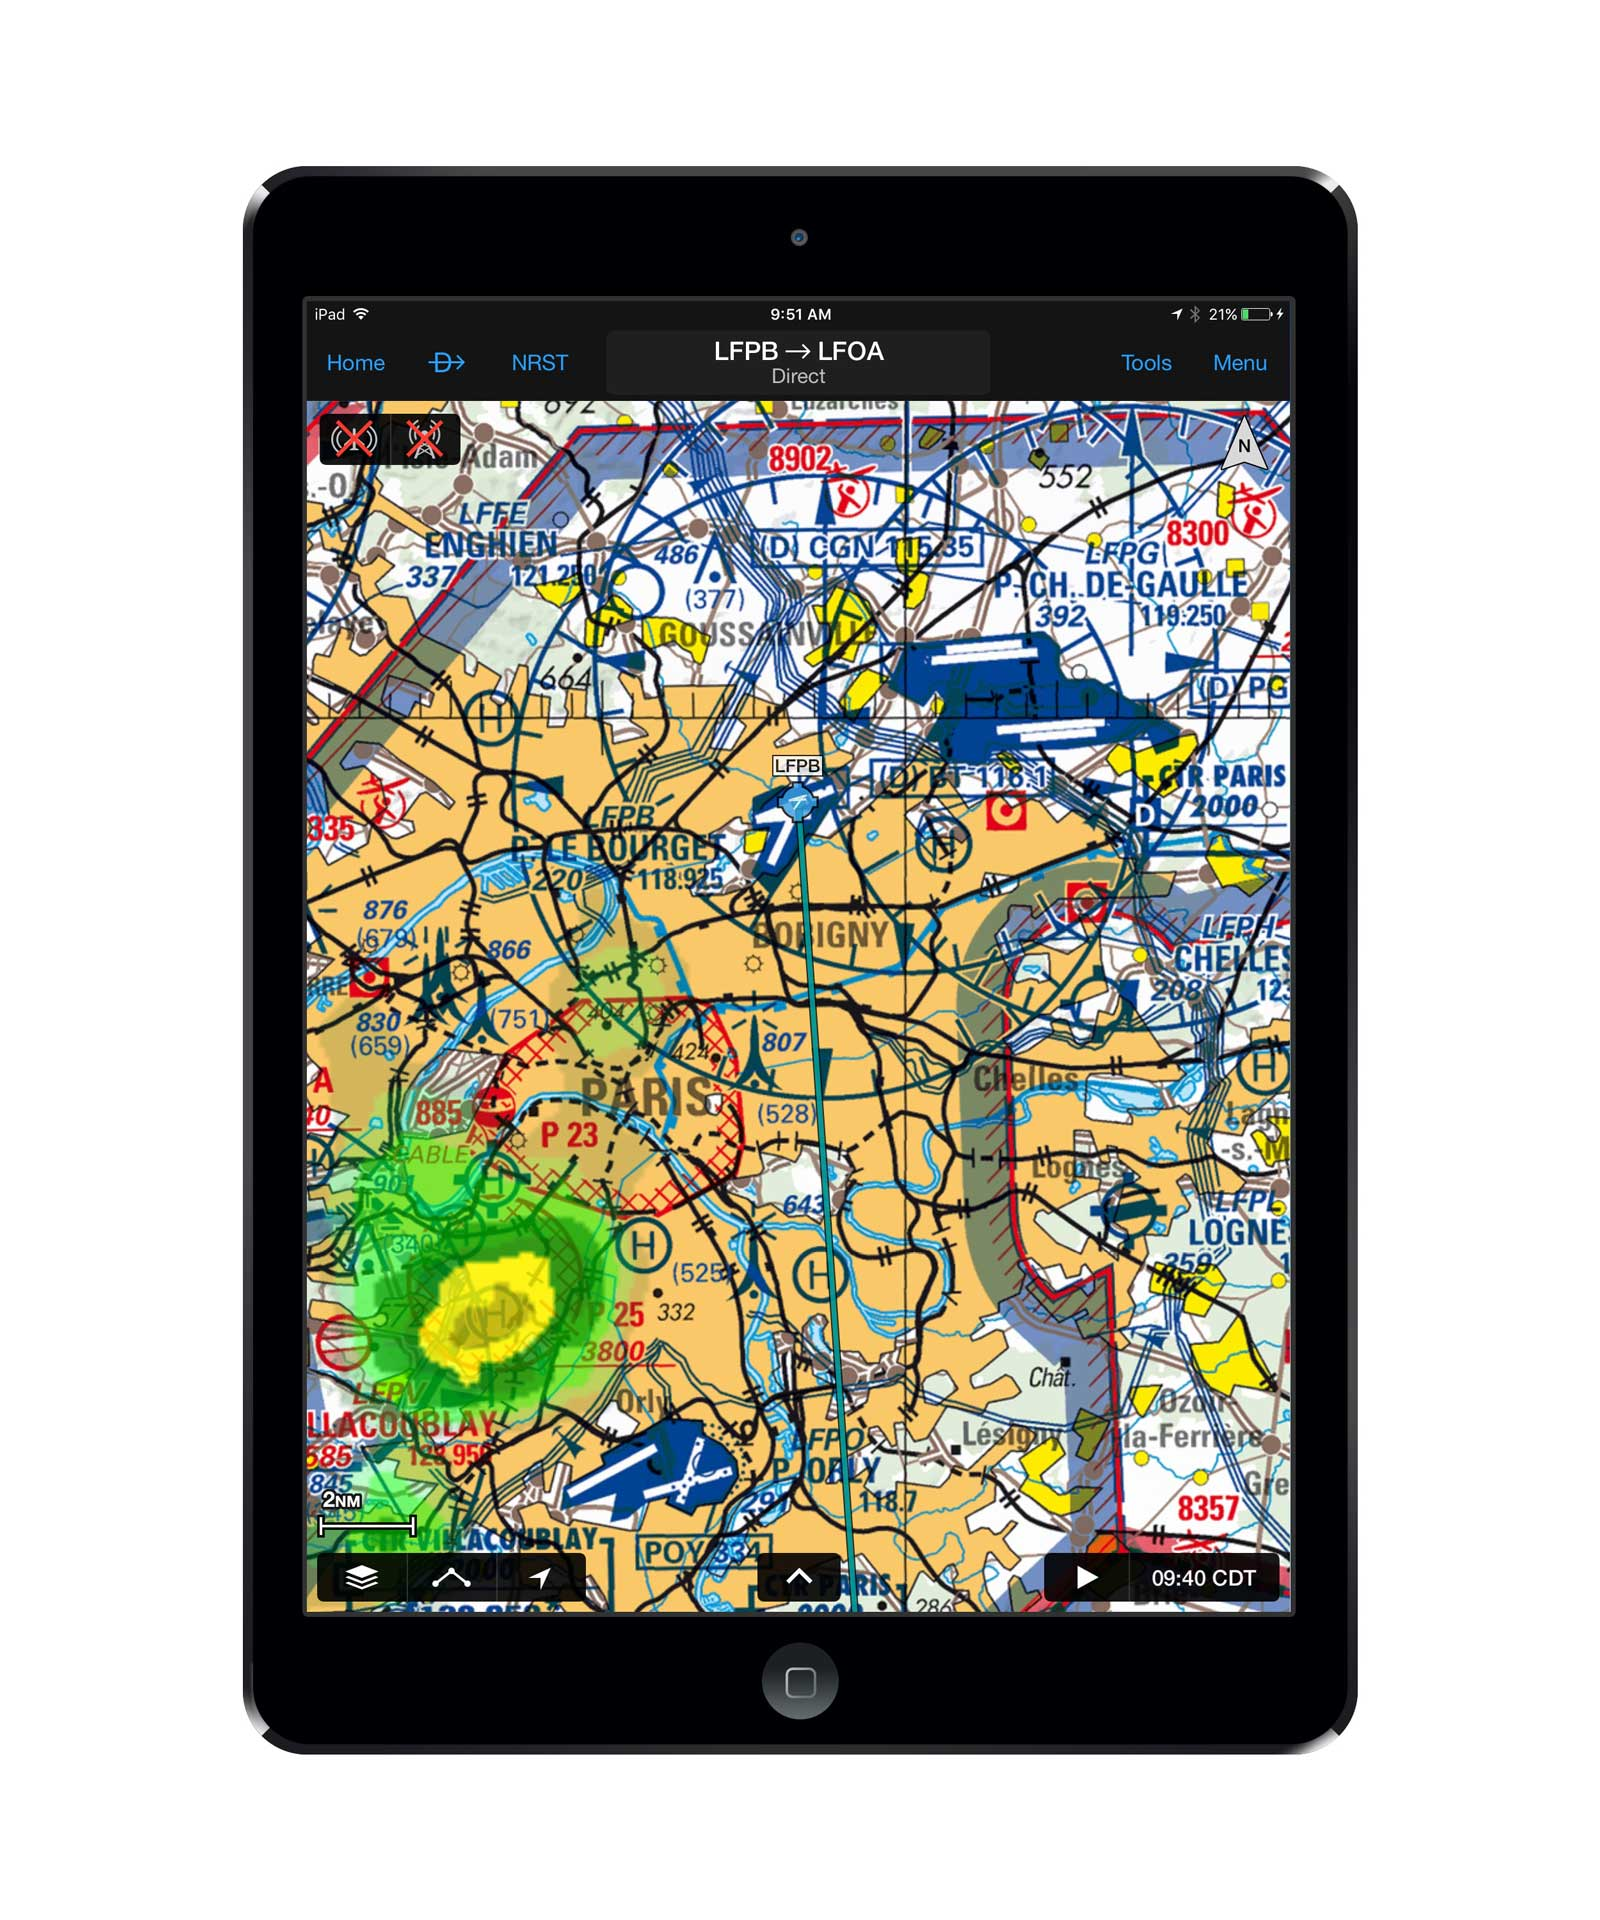 VFR charts of France have now joined UK charts available for the Garmin Pilot app.